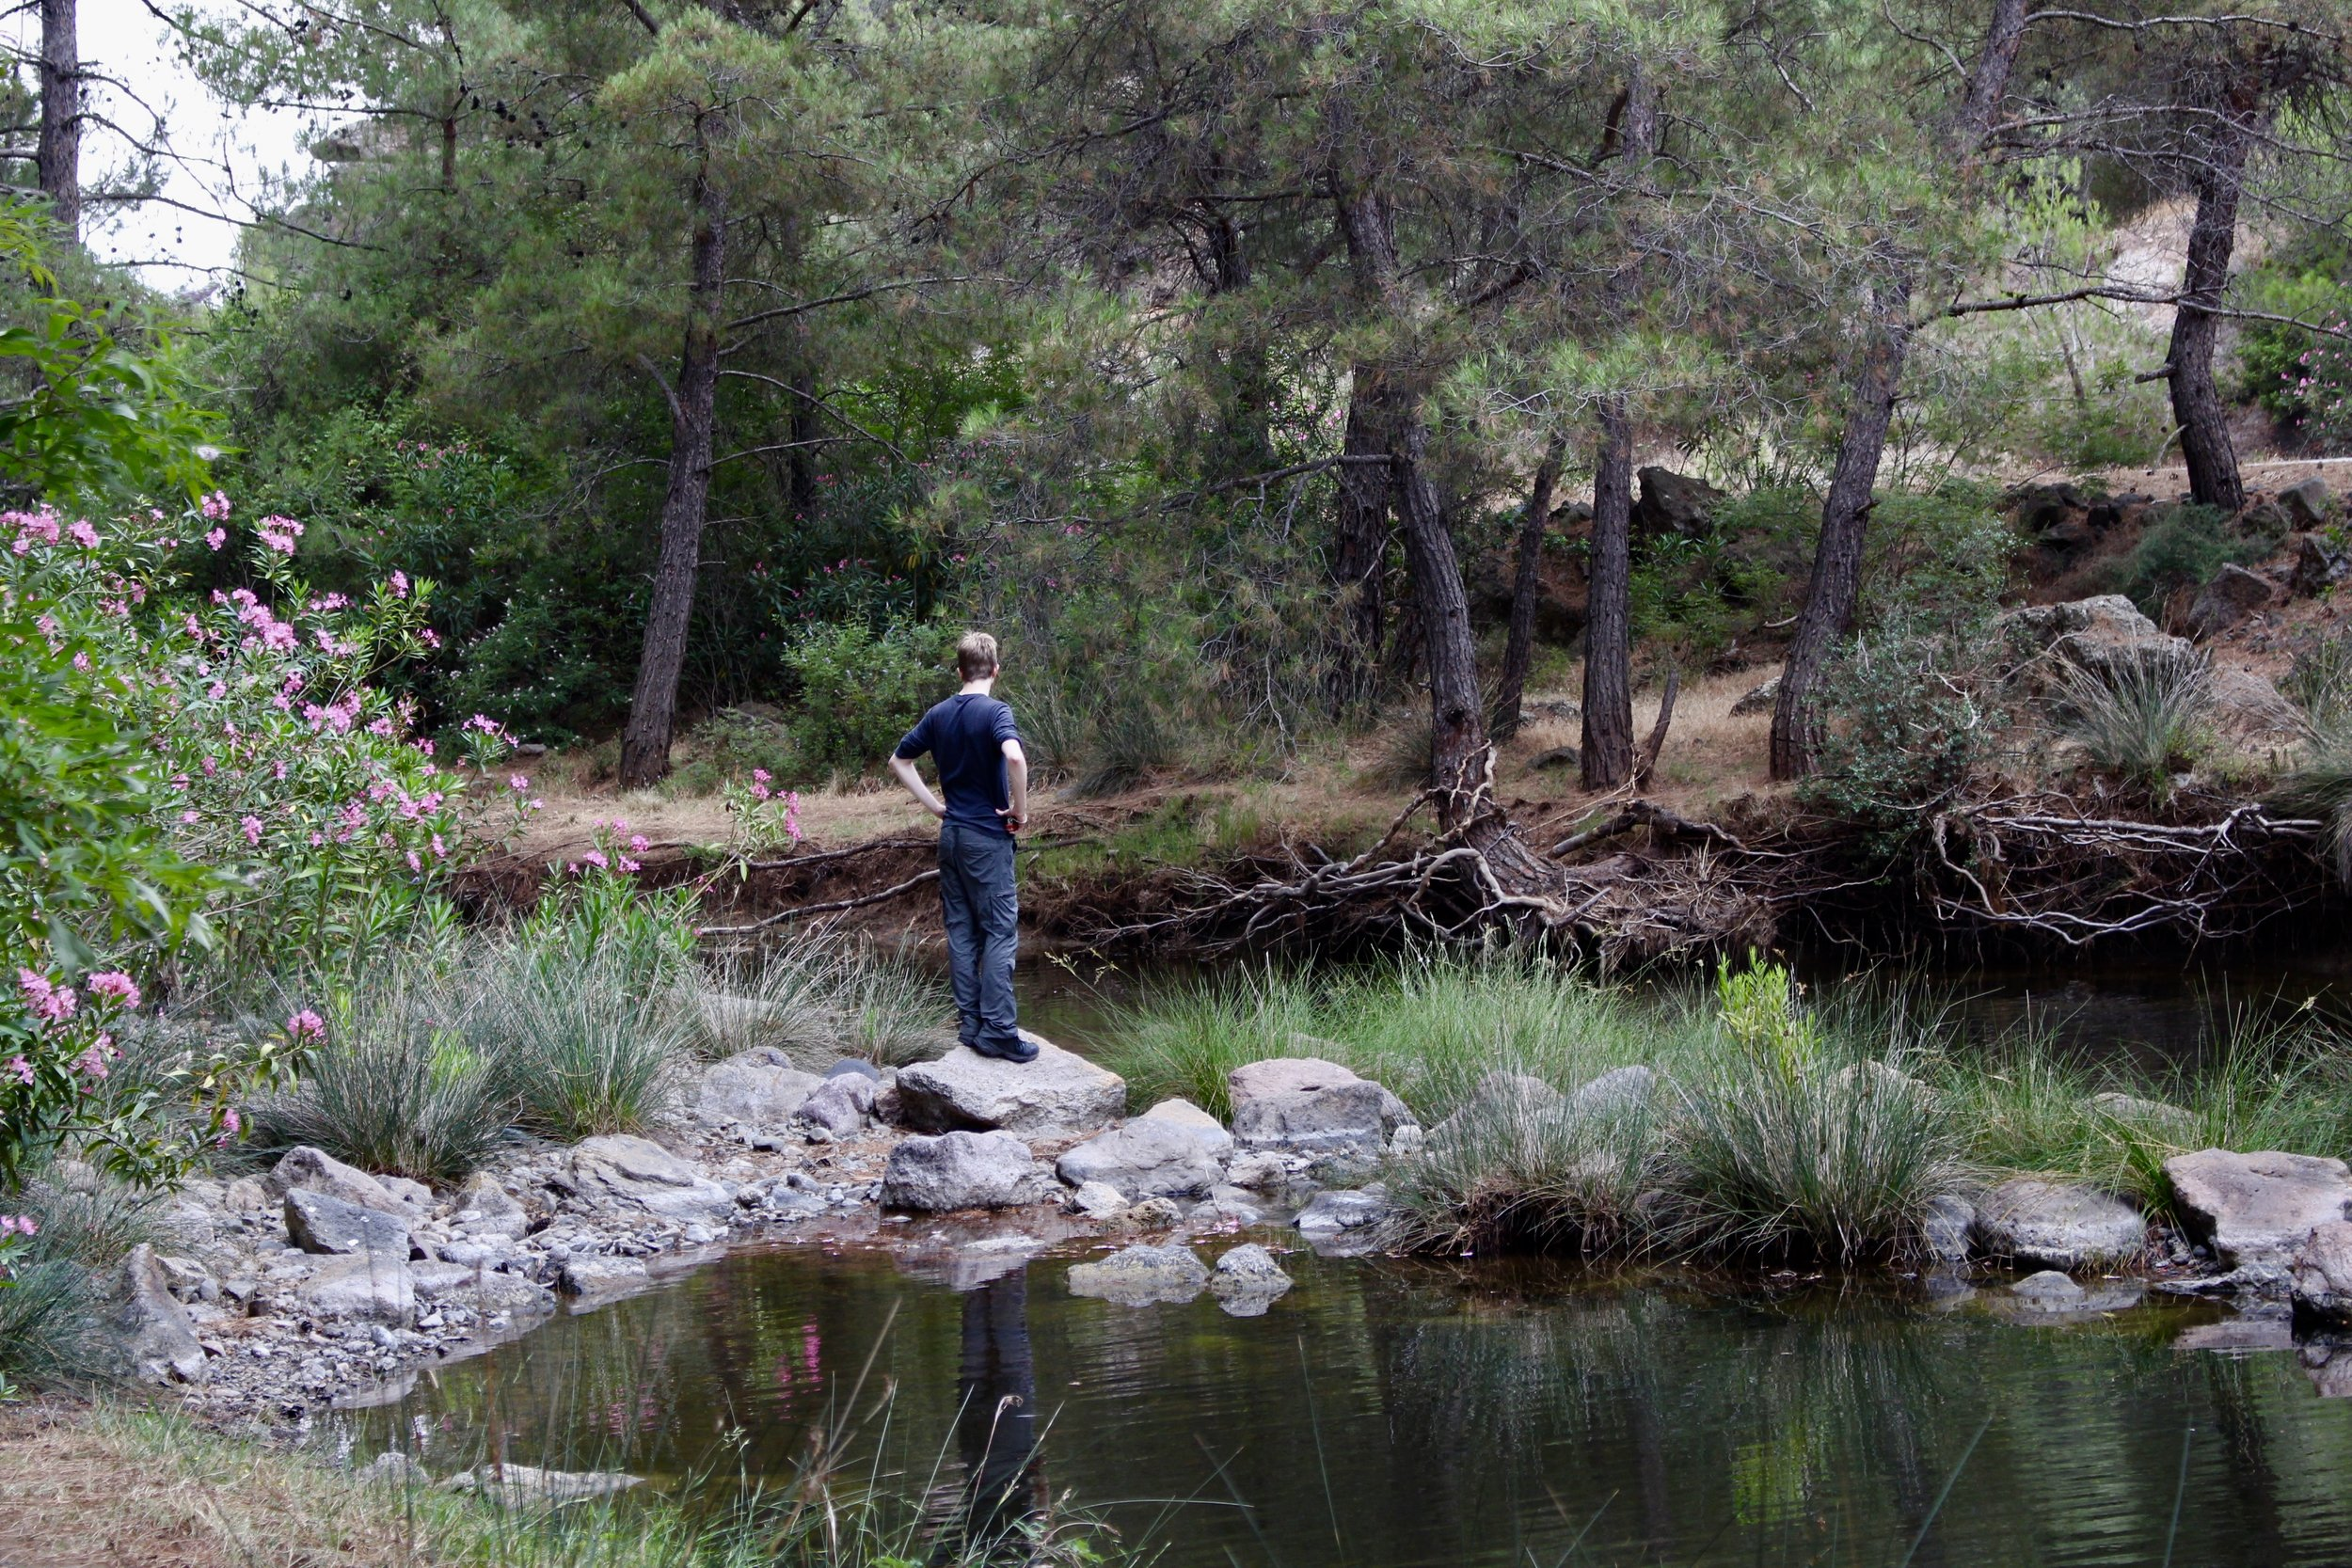 Matt Faherty surrounded by oleander and gazing at turtles along a Lesvos river.